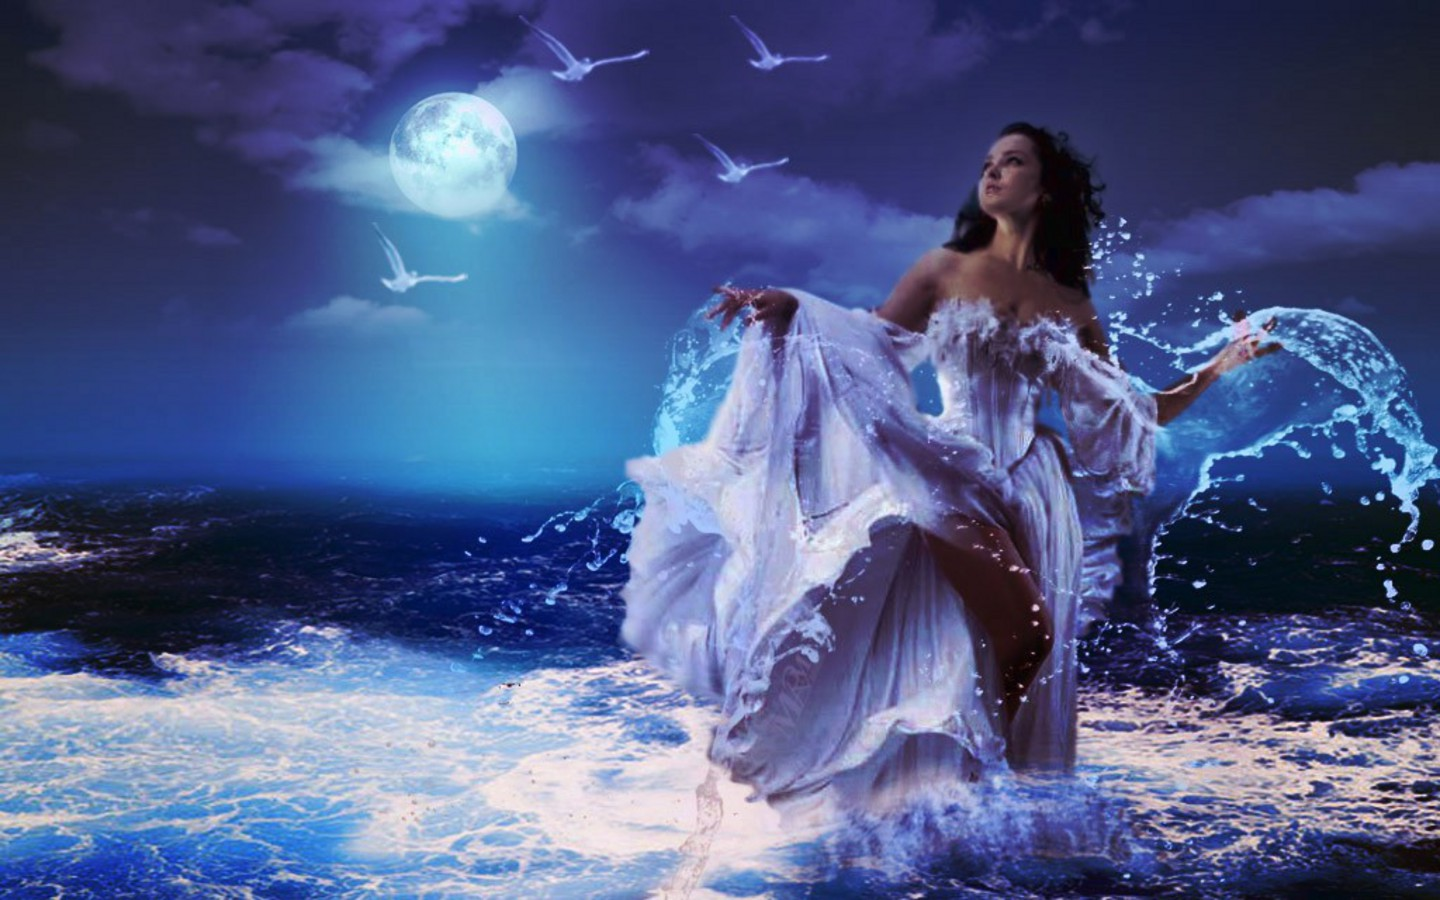 Fantasy Art Woman In Ocean